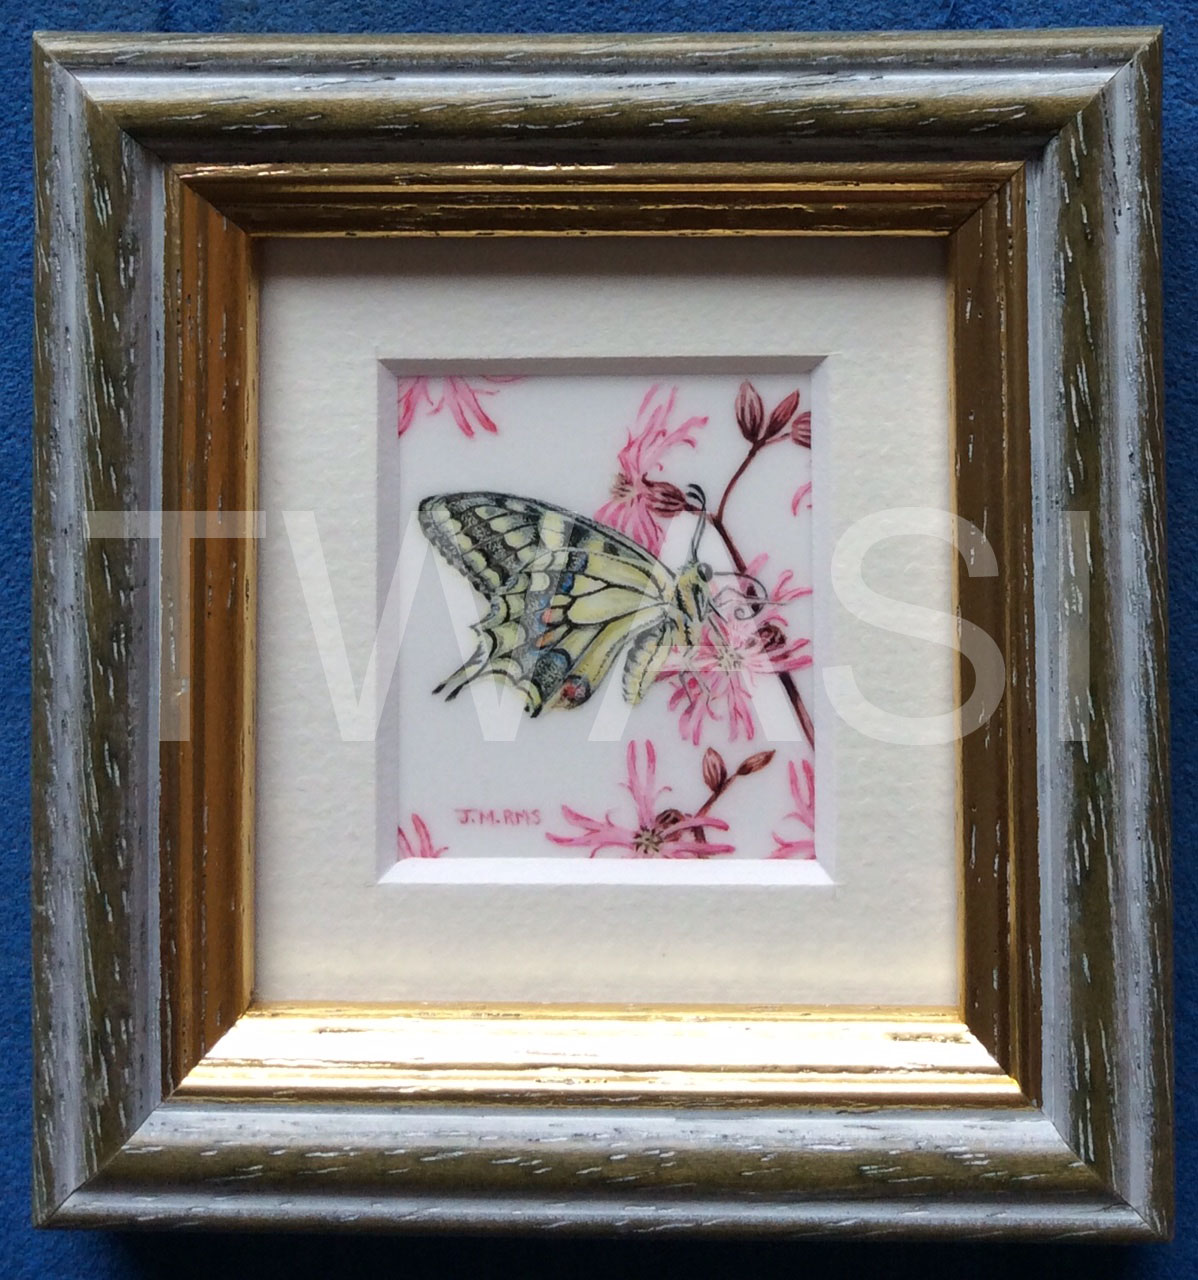 'The Swallowtail' by Jenny Musker £345